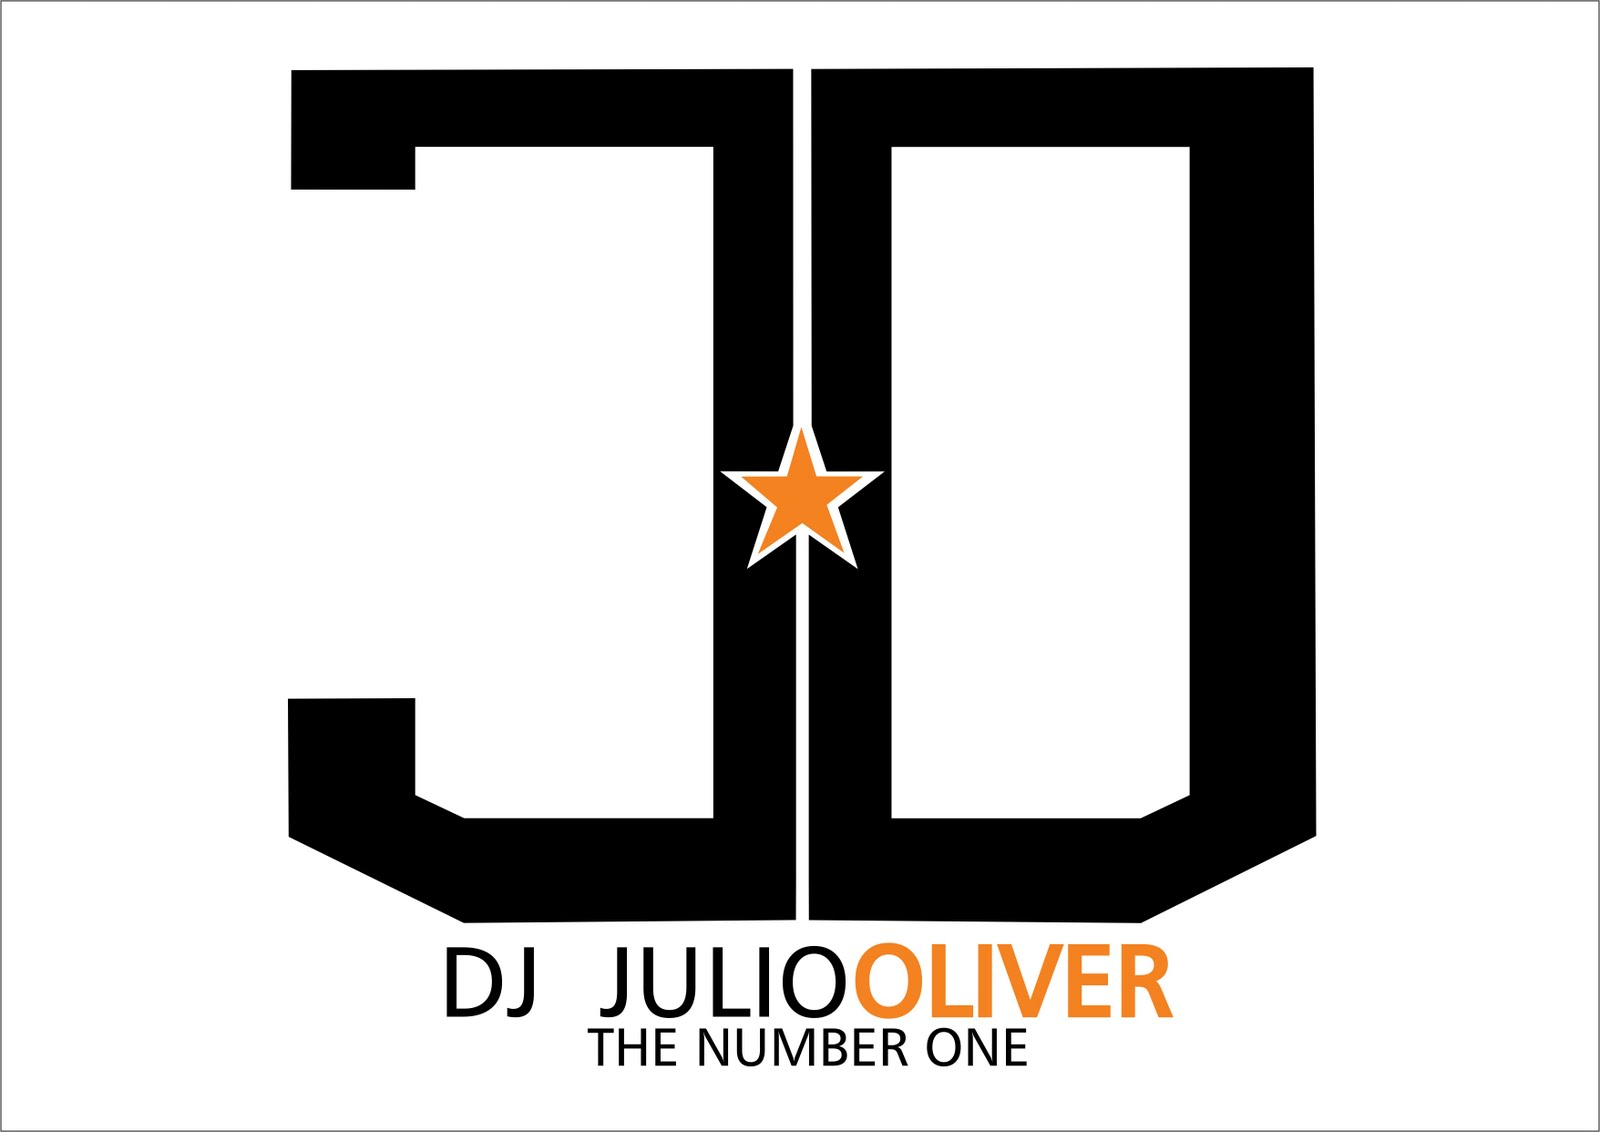 Logo Tipo Para O Dj Julio Oliver The Number One